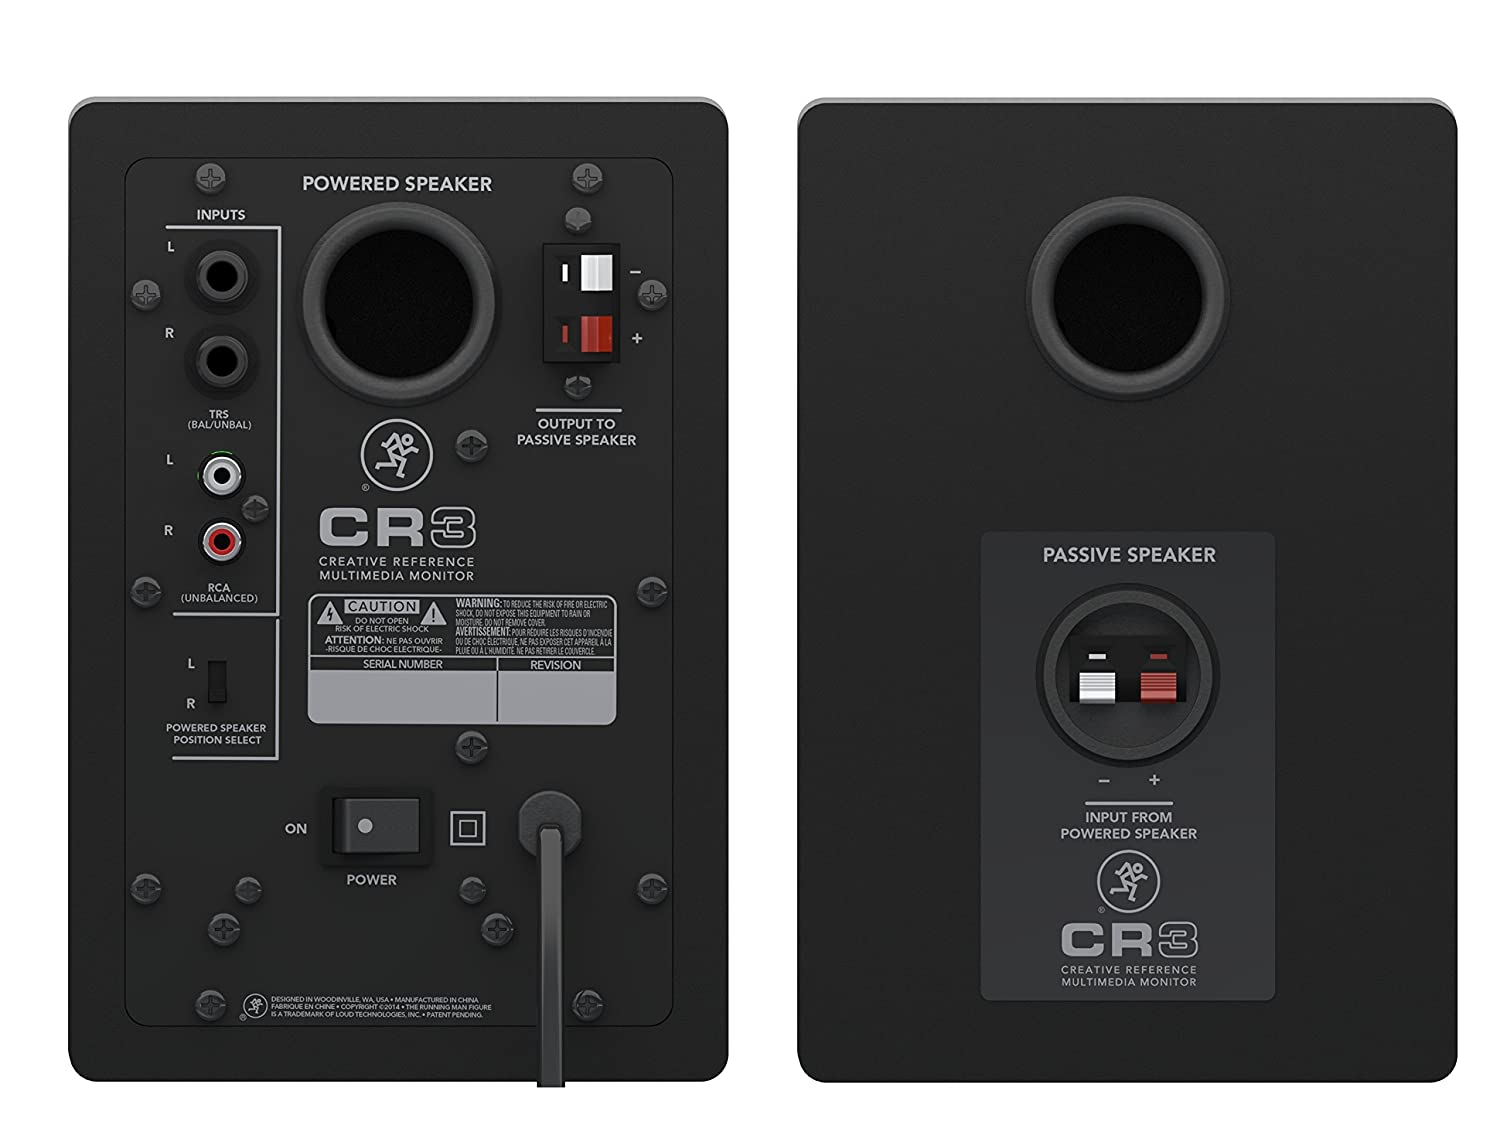 mackie cr3 review - how to use